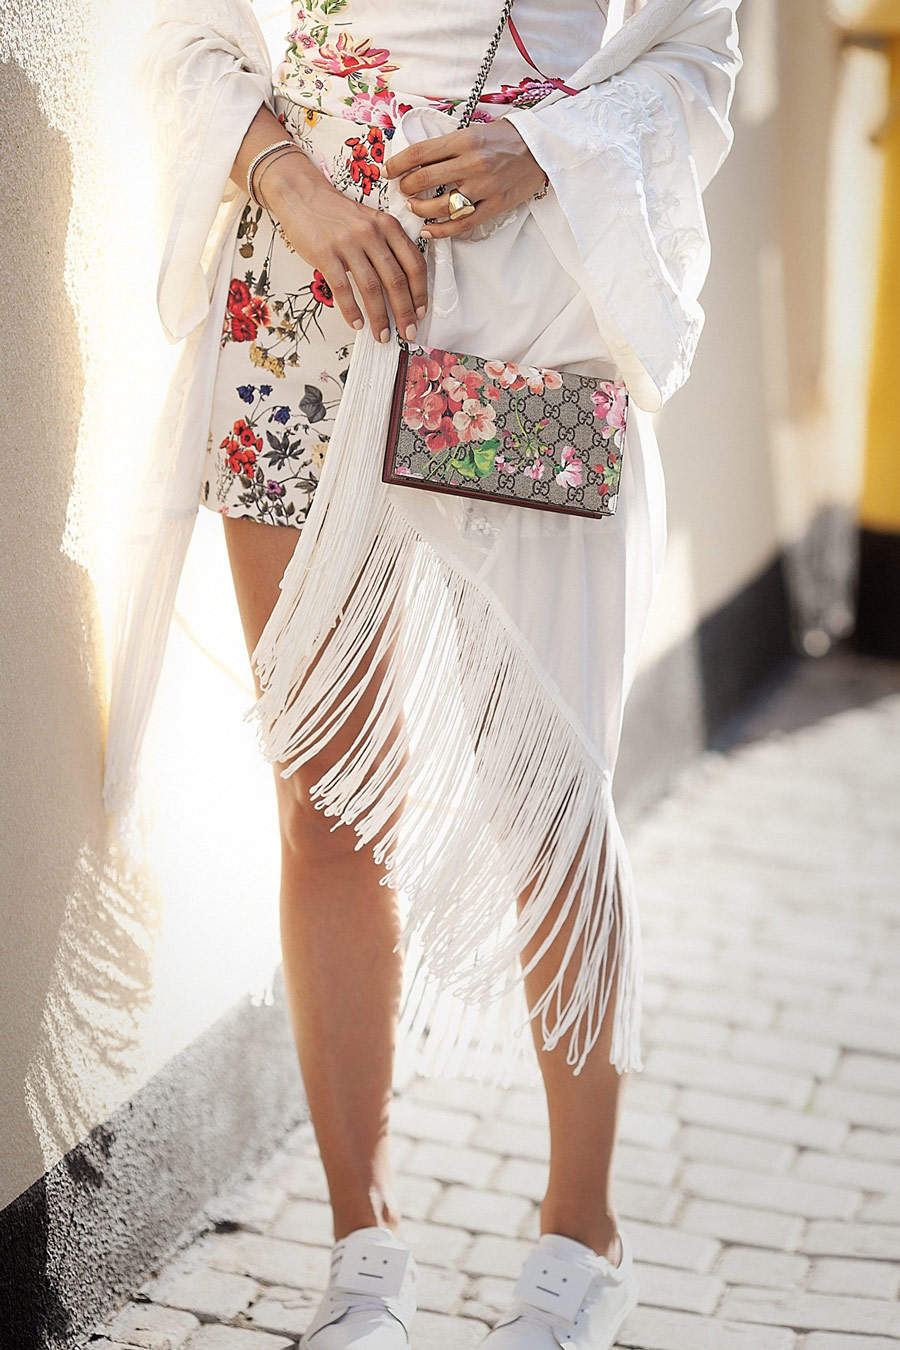 gucci bloom wallet chain, fringed kimono, hot summer days outfit ideas,